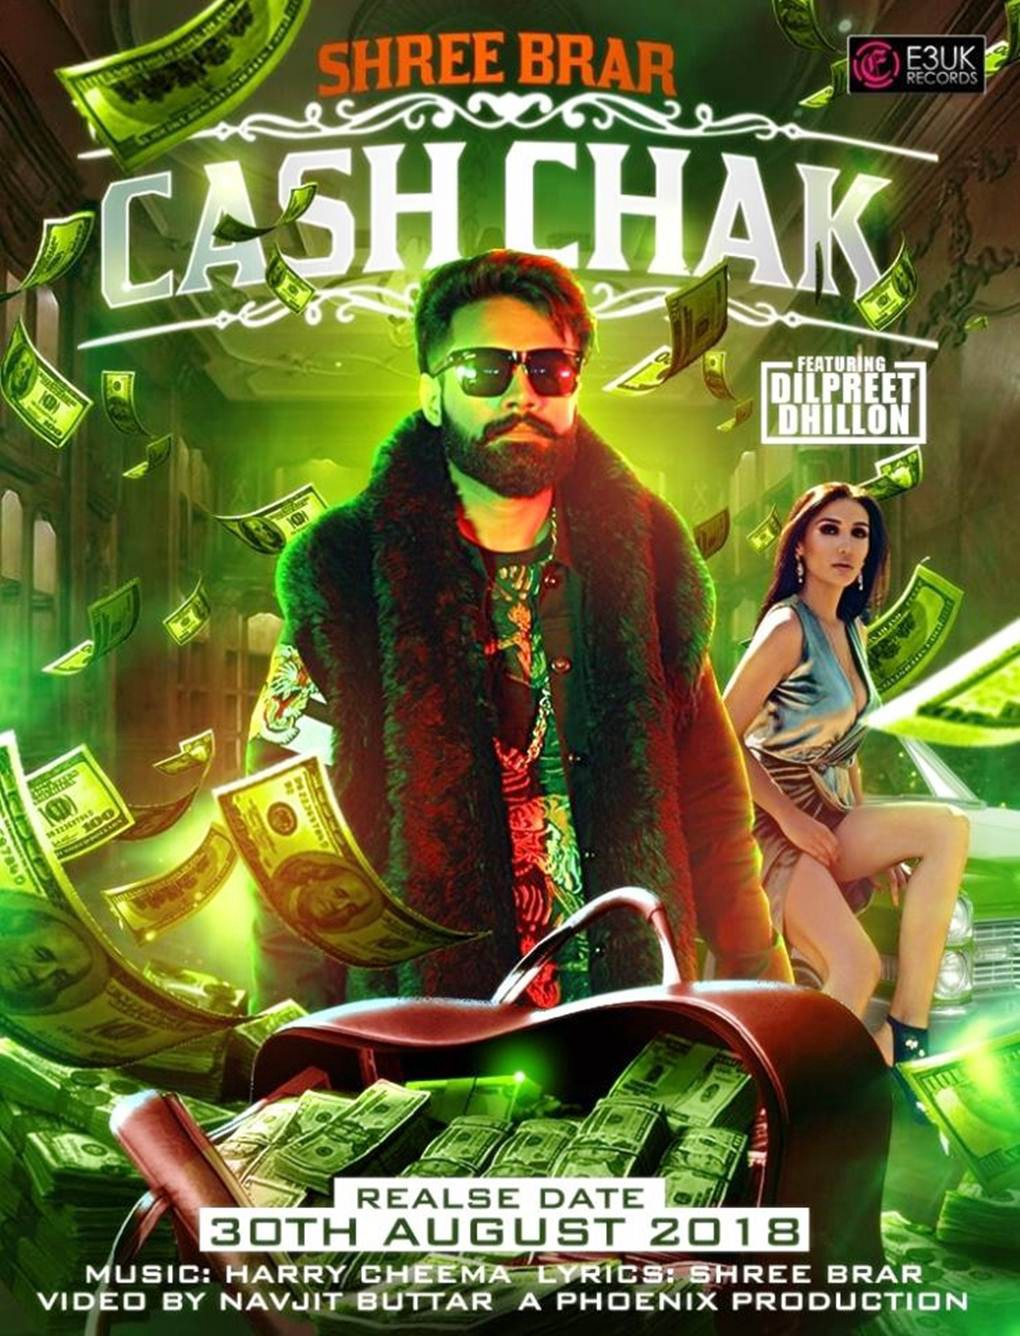 Cash Chak by Shree Brar Full Video Download mp3 or watch Online